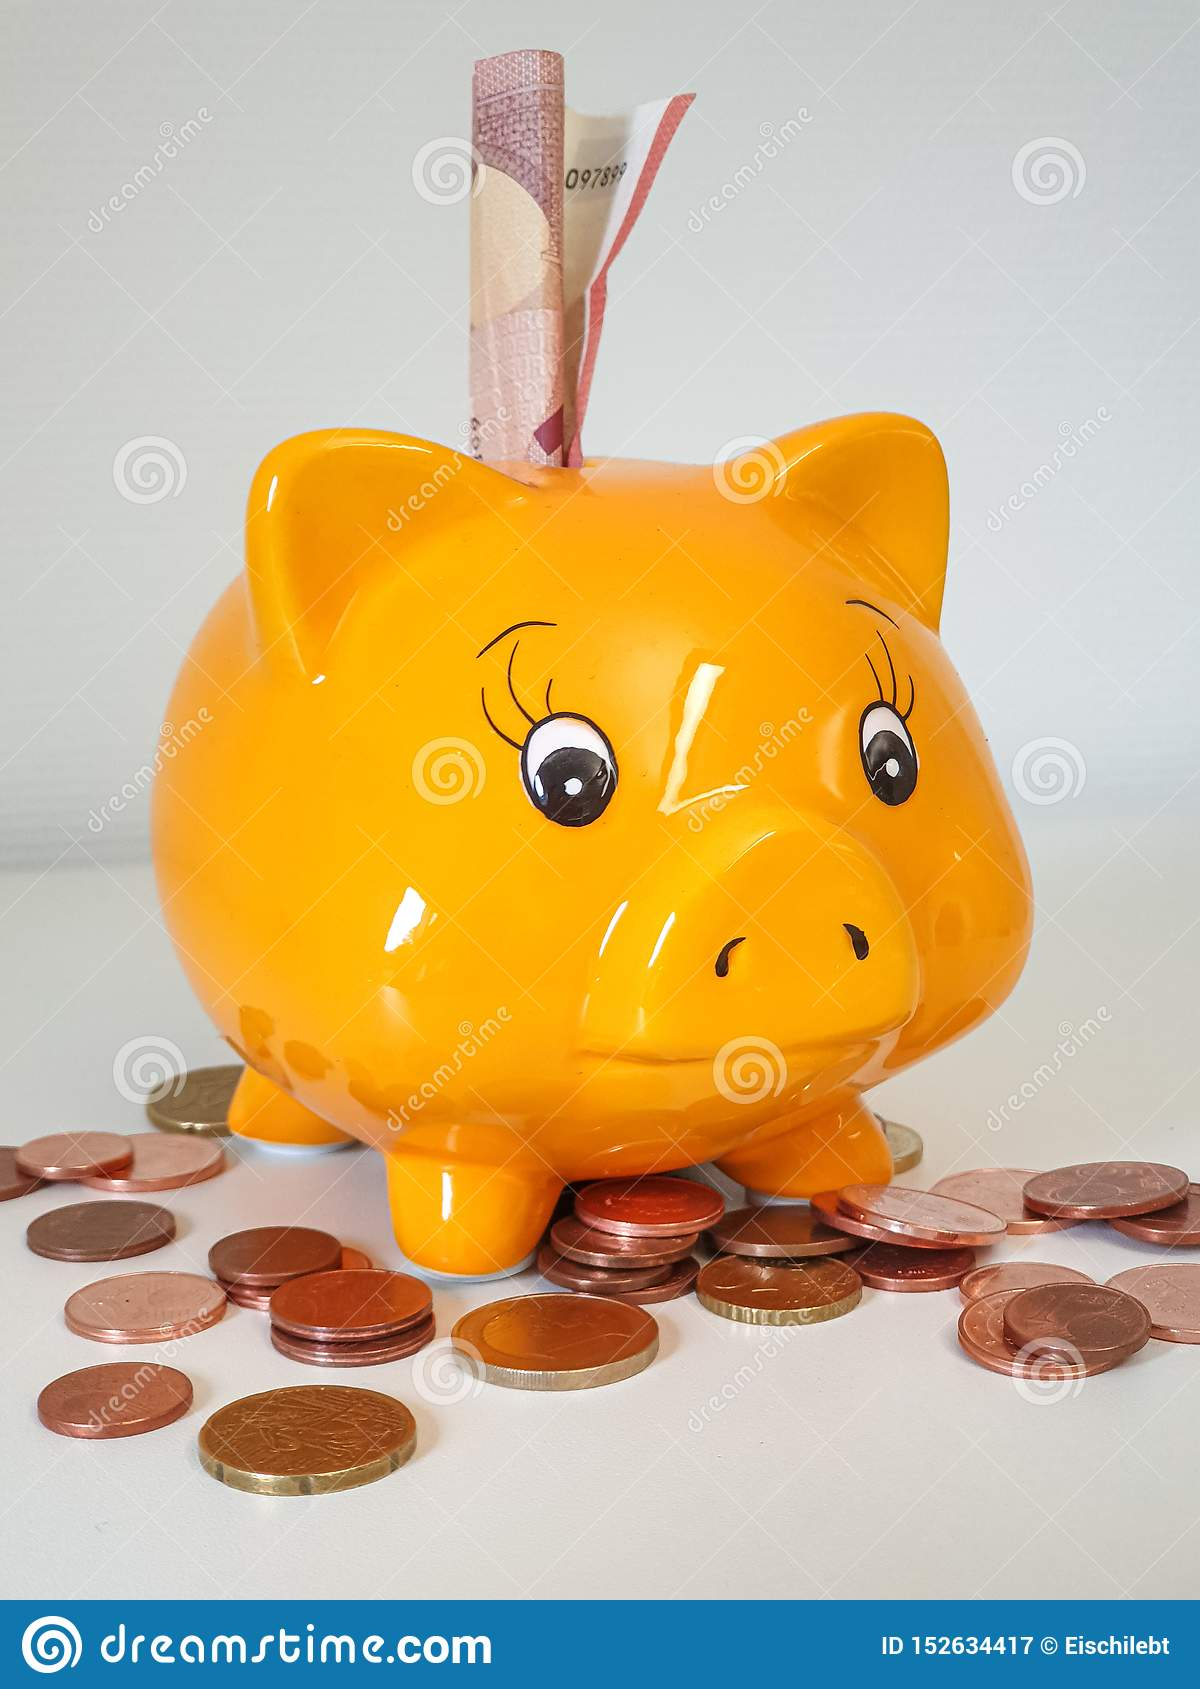 Piggy Money Bank With Coins Stock Image